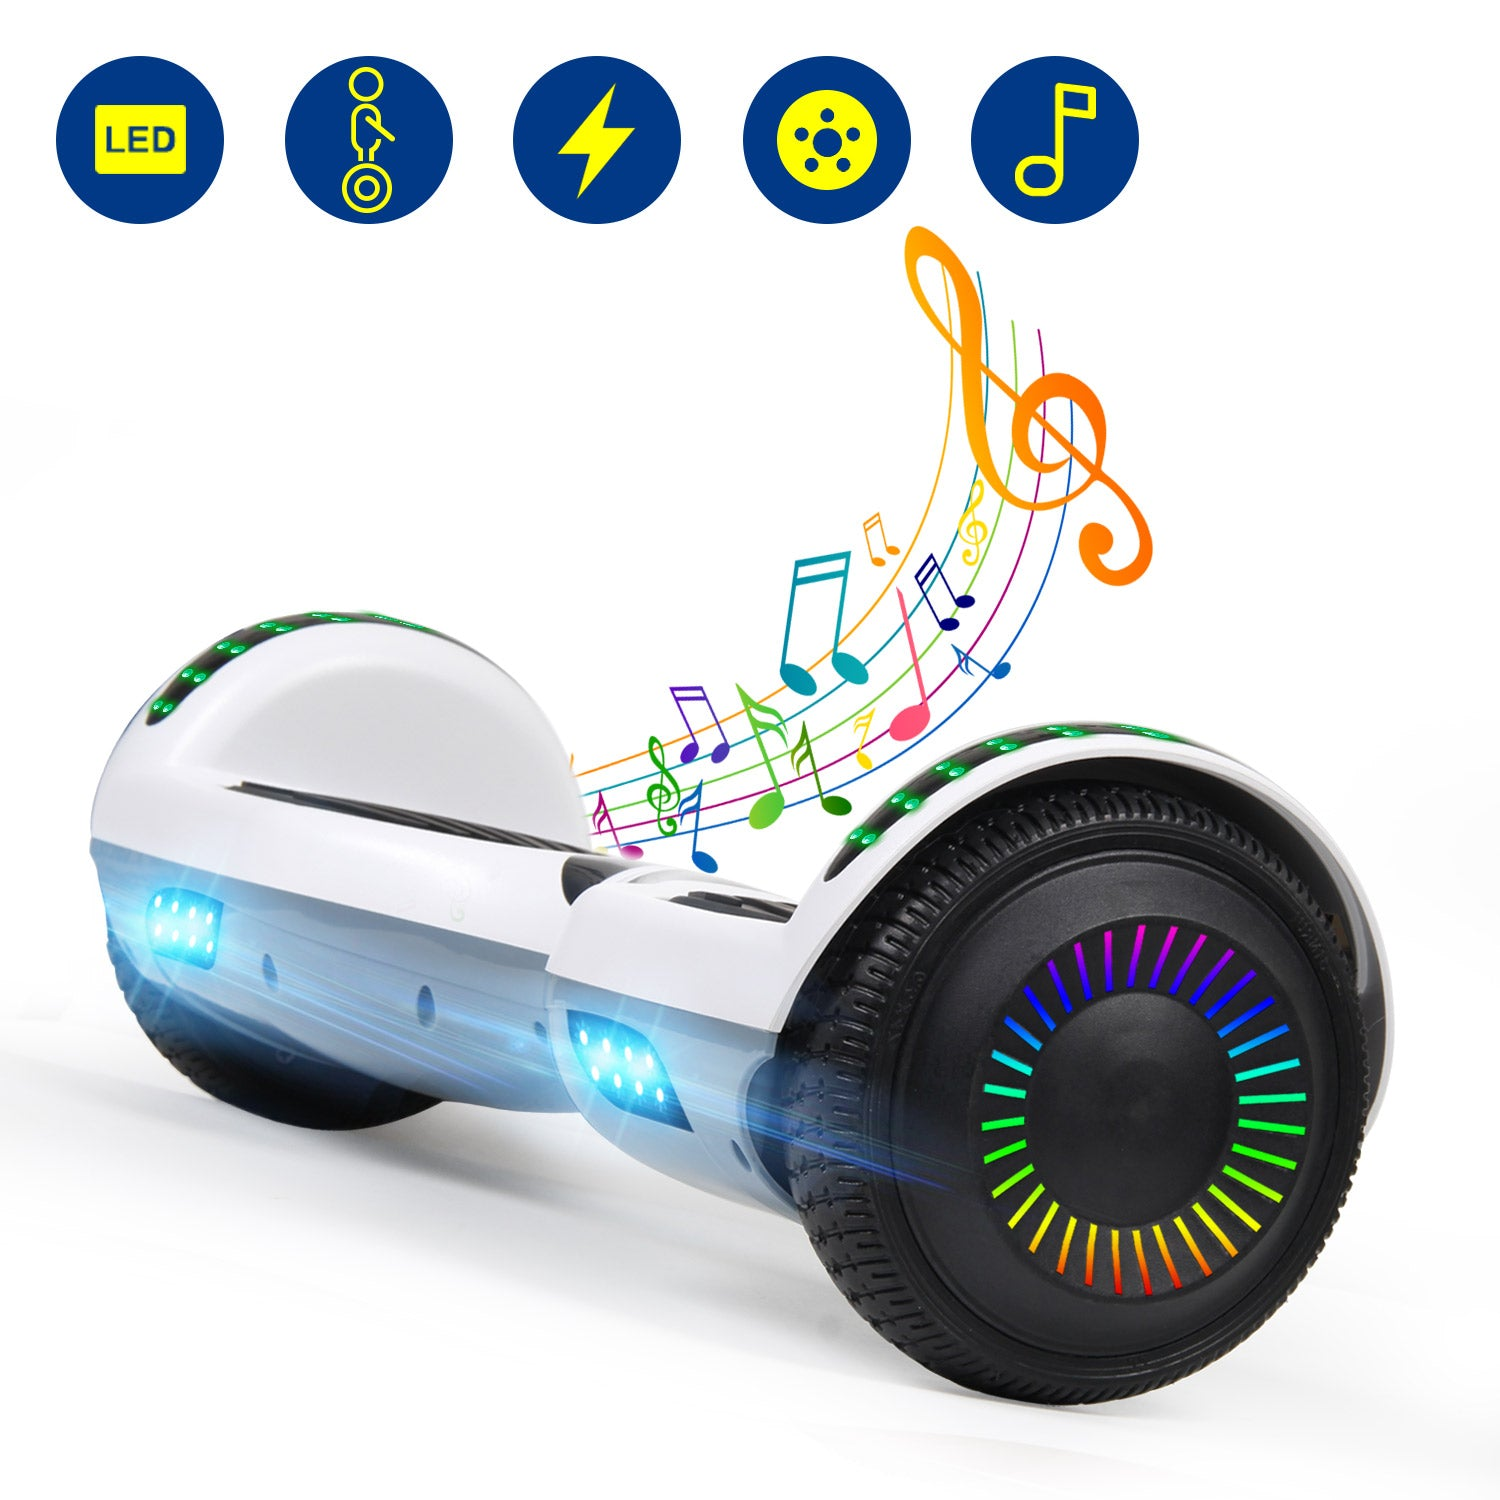 YHR 6.5 Inch Hoverboard with Bluetooth W/Speaker, LED Wheels and LED Lights for Kids and Adult- Two colors